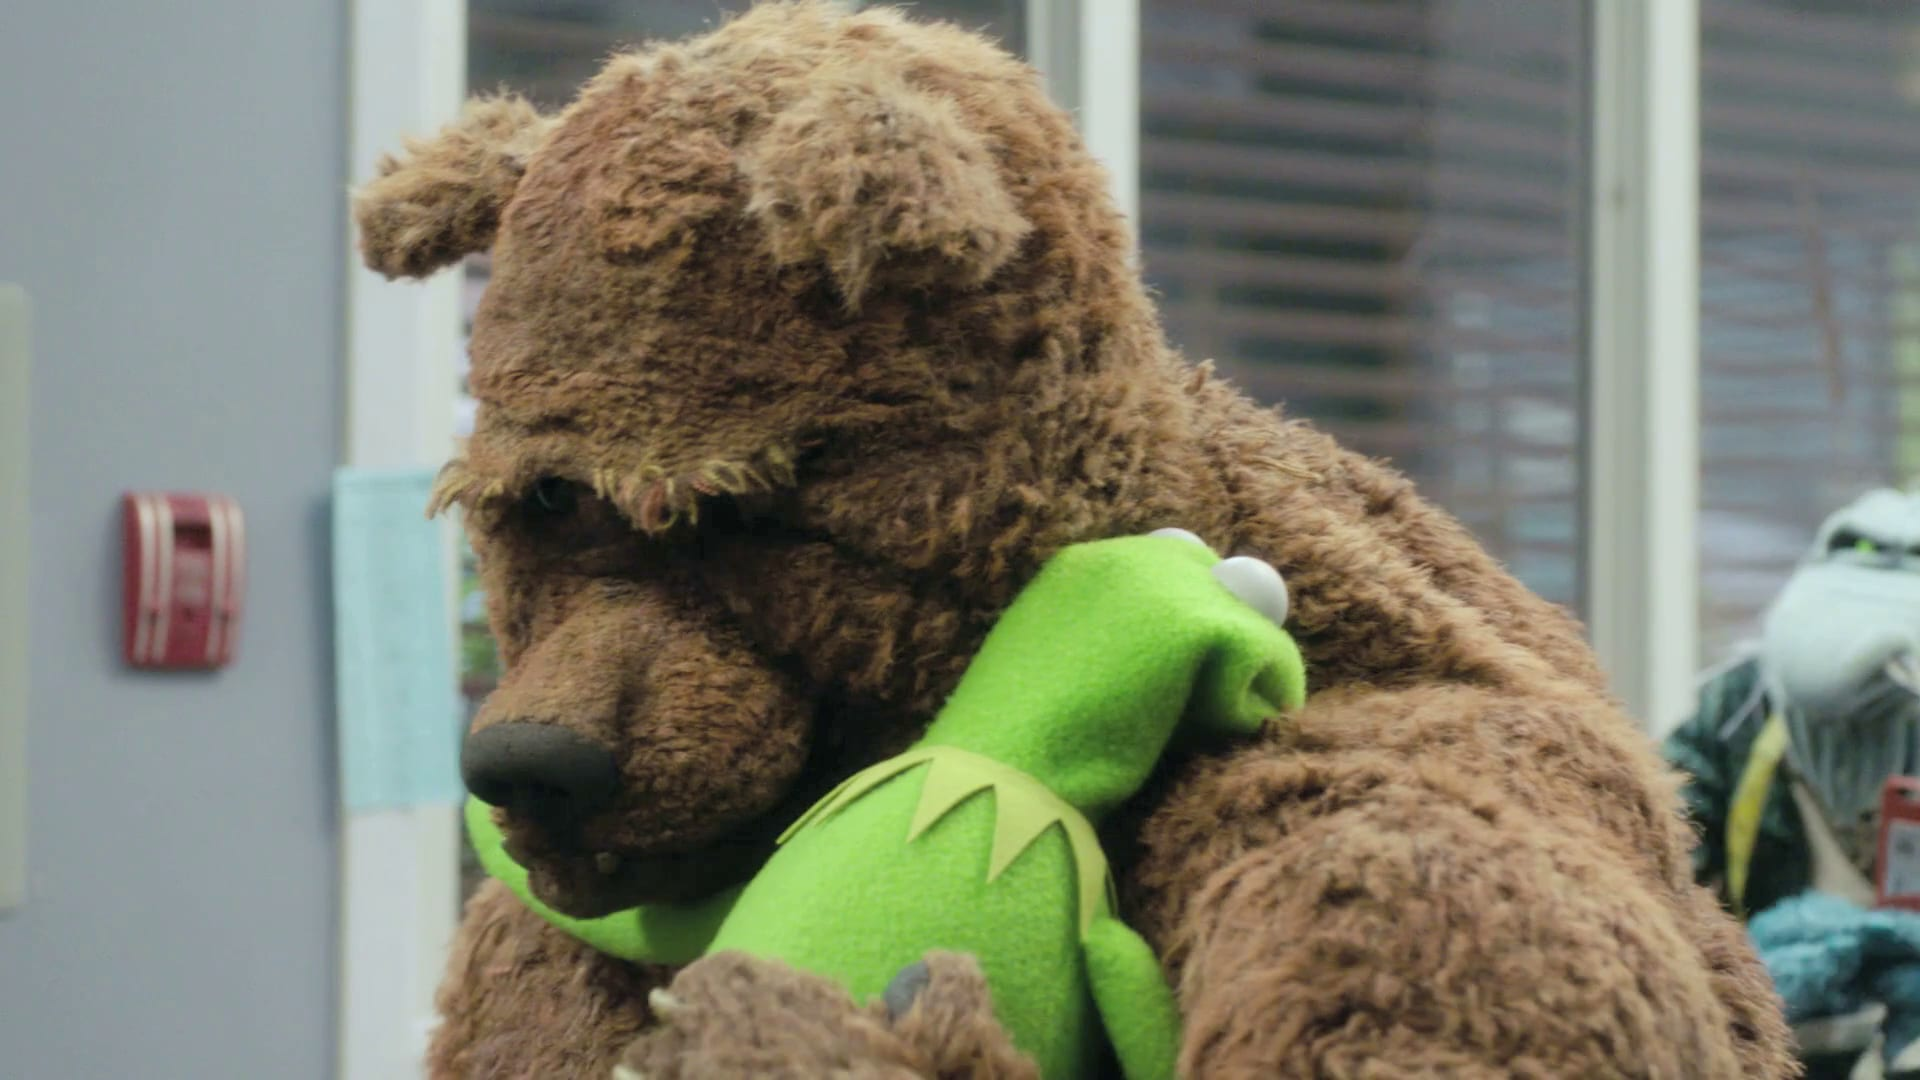 The Funniest Moments from #TheMuppets Episode 108